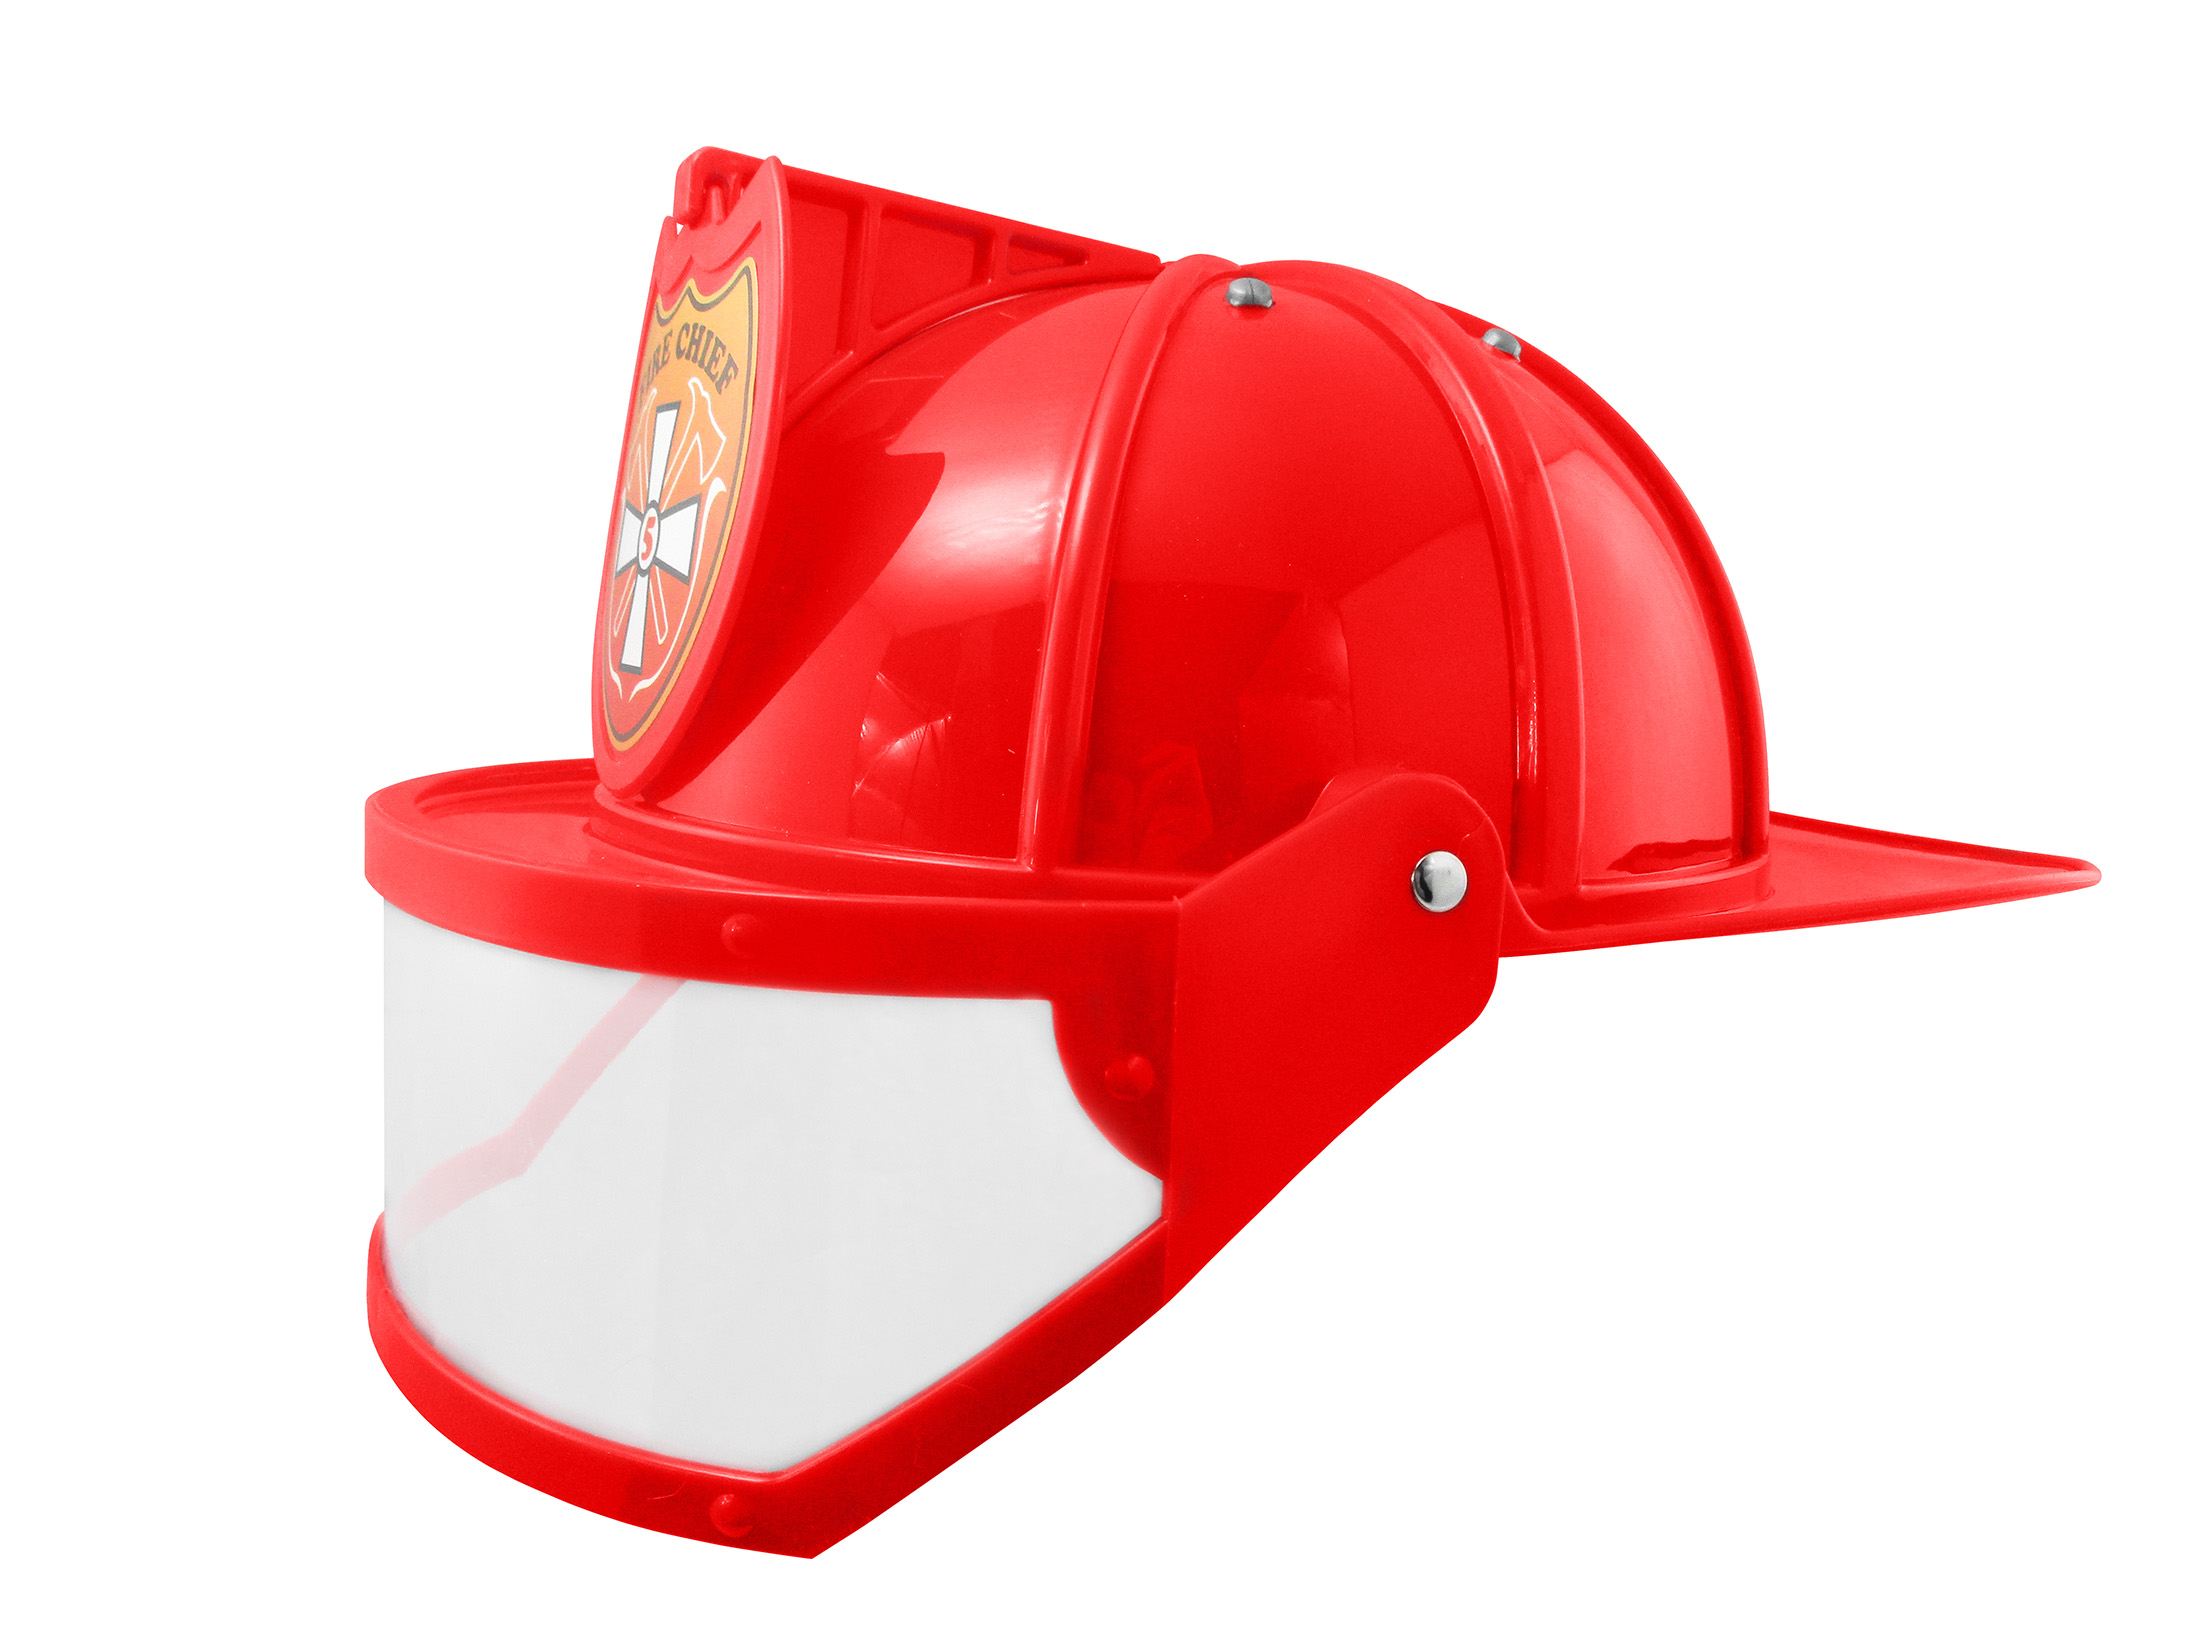 thumbnail 11 - Adult Child Fire Chief Firefighter Fireman Helmet with Visor Costume